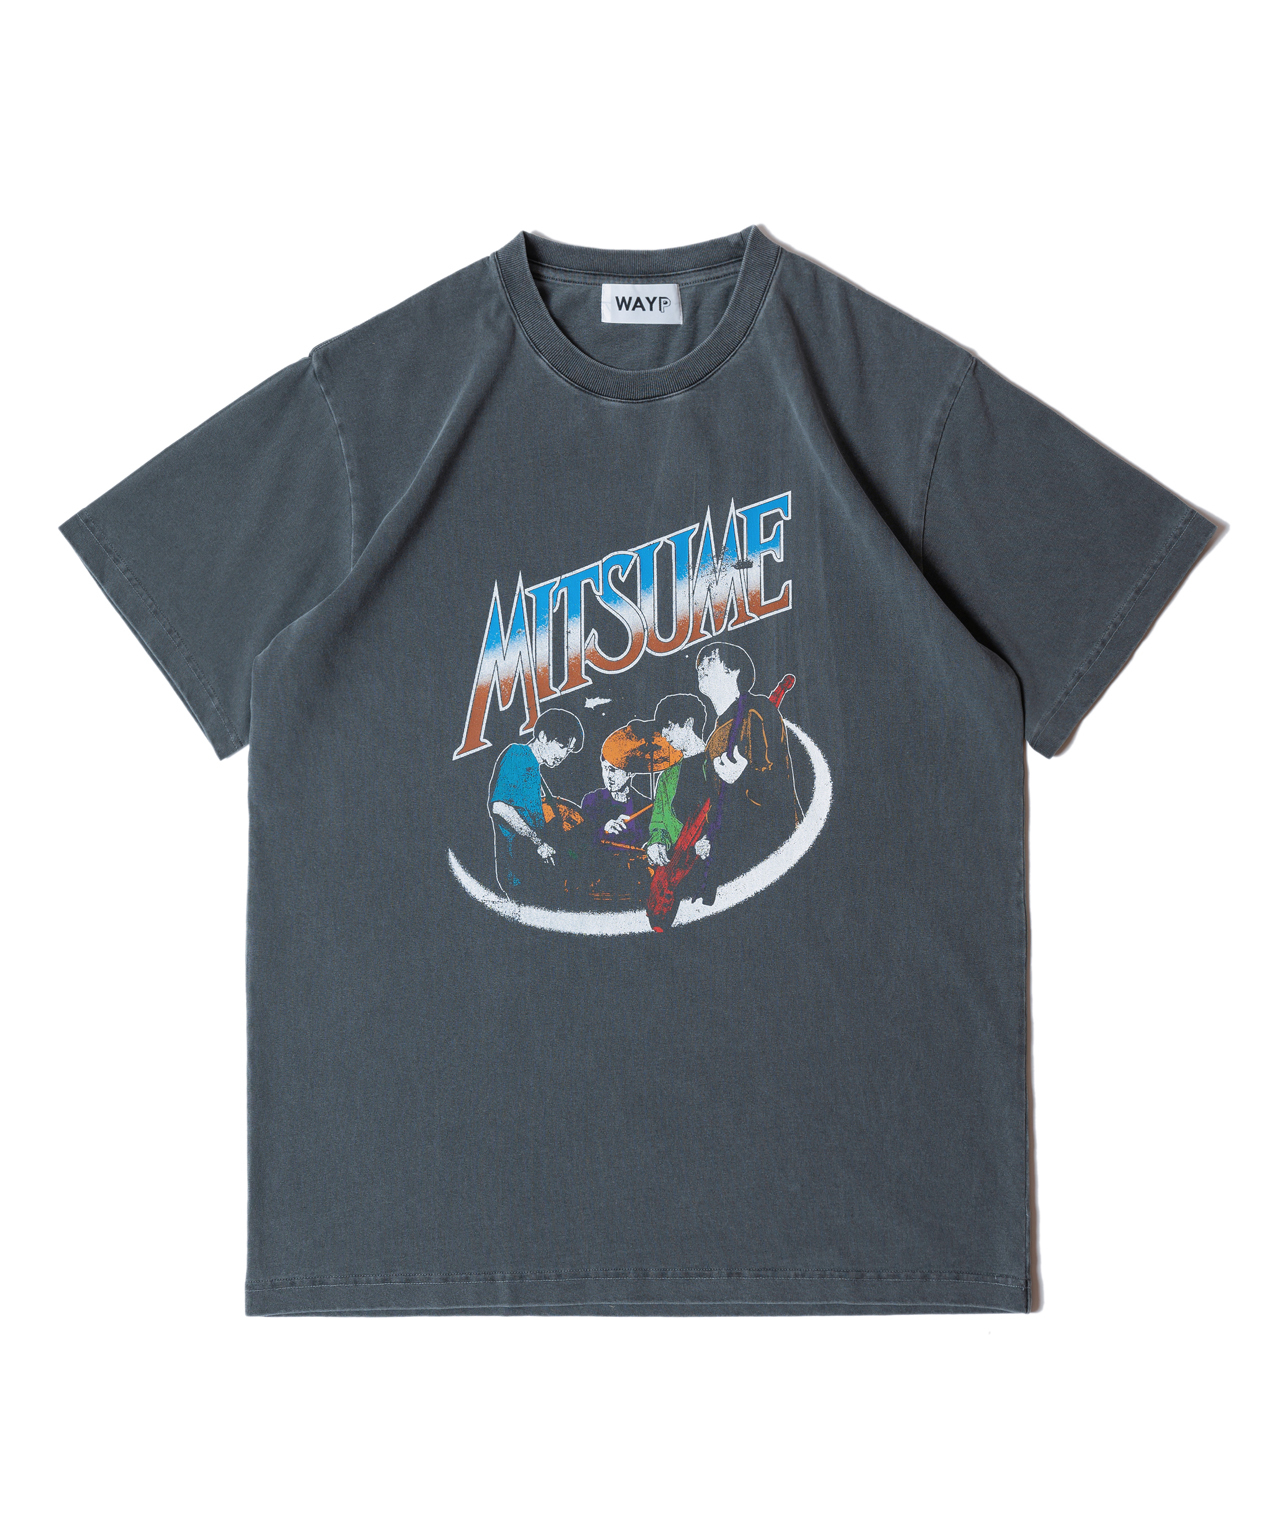 mitsume Tee by WAYP MUSIC